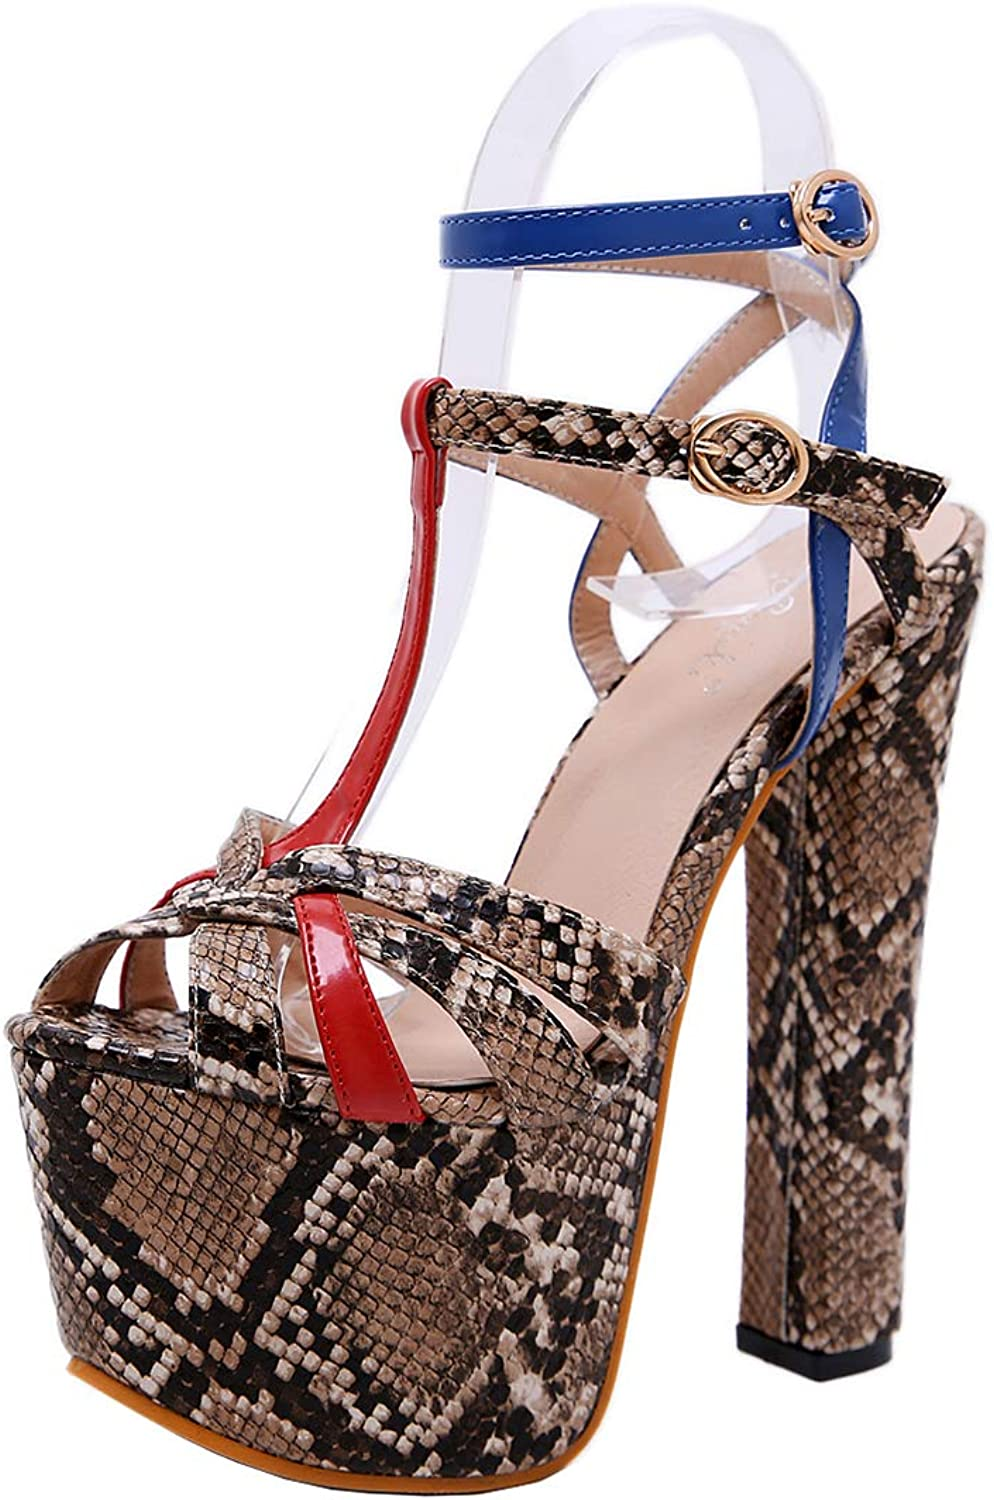 XDLEX Women's Sexy Gladiator Platform Gradient Sandals Snakeskin Patten Ankle Buckle Strap Peep Toe High Chunky Heels Pump Strappy Heightening shoes